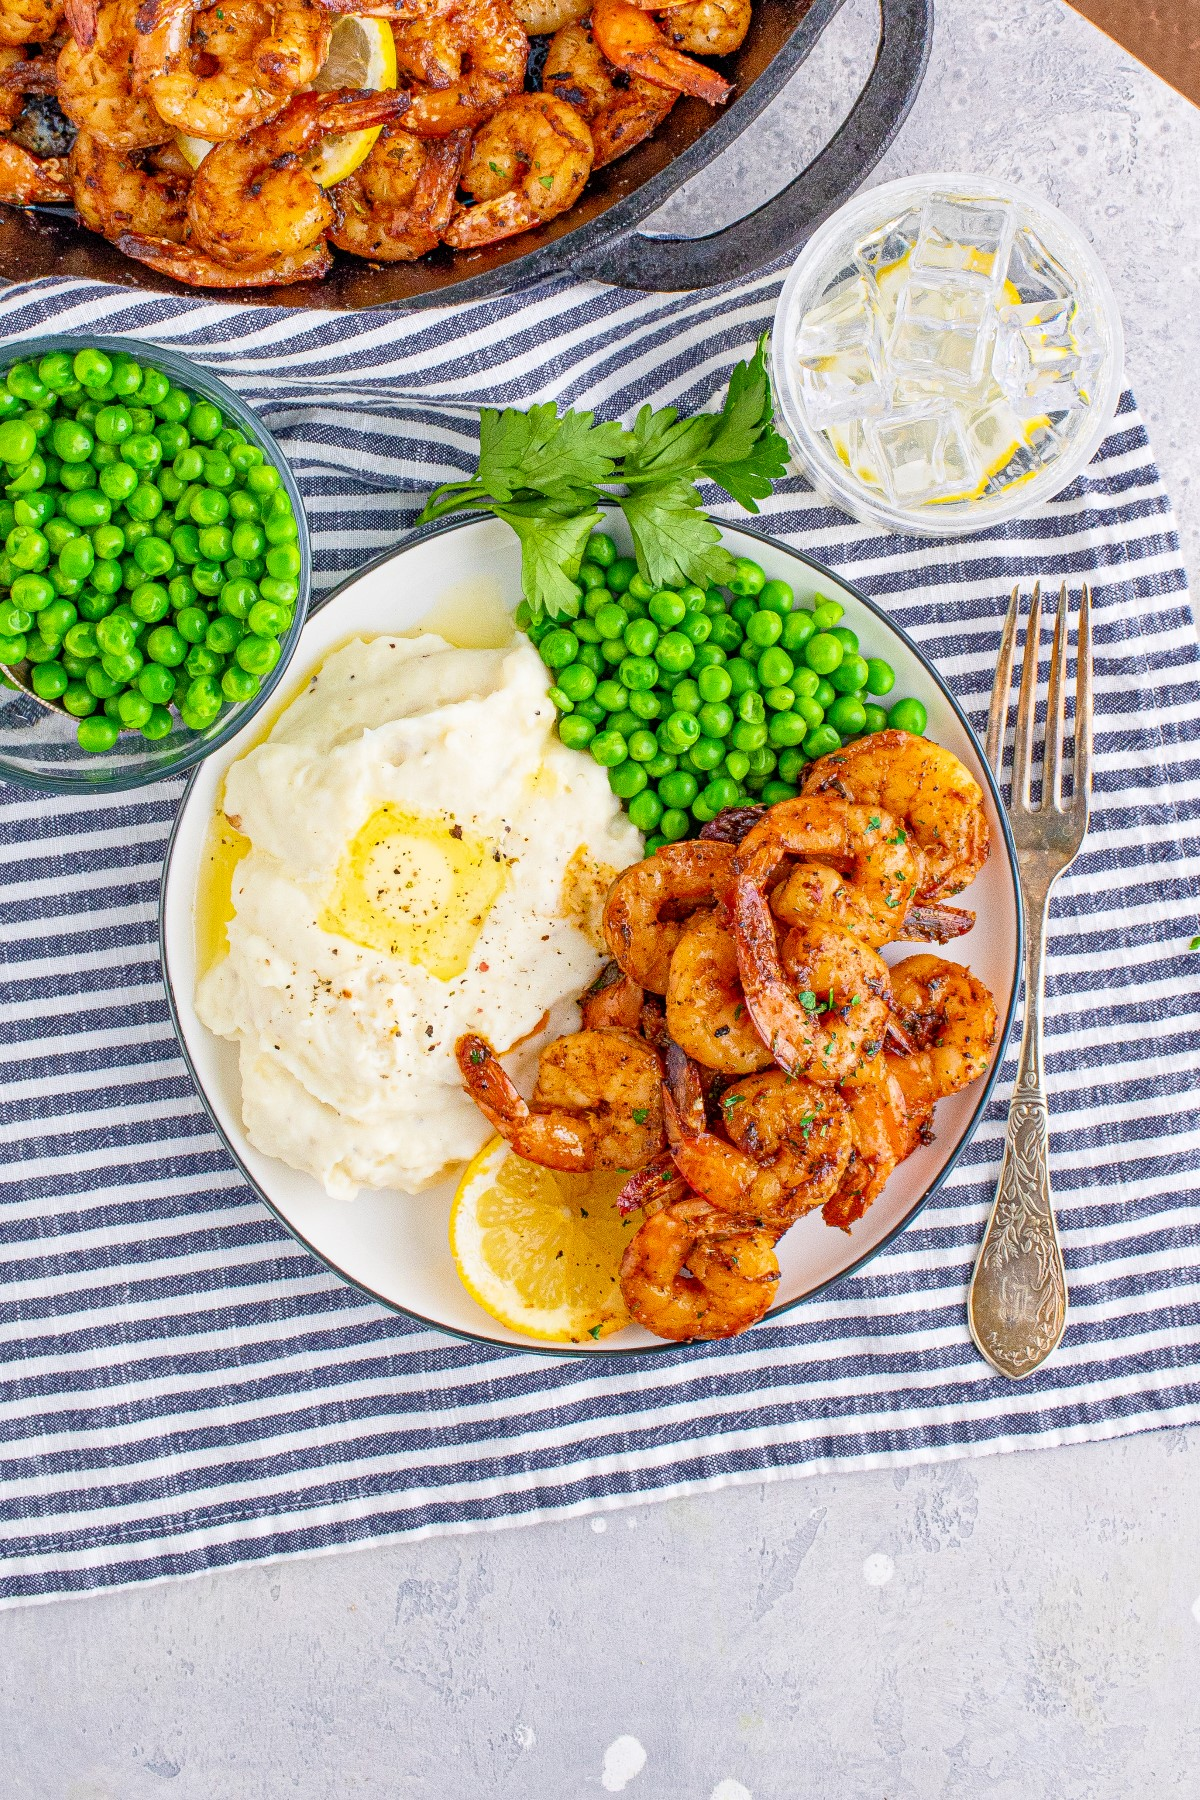 Blackened shrimp on a white plate with peas and mashed potatoes, with a small bowl of peas and a cast iron skillet of blackened shrimp beside the plate.